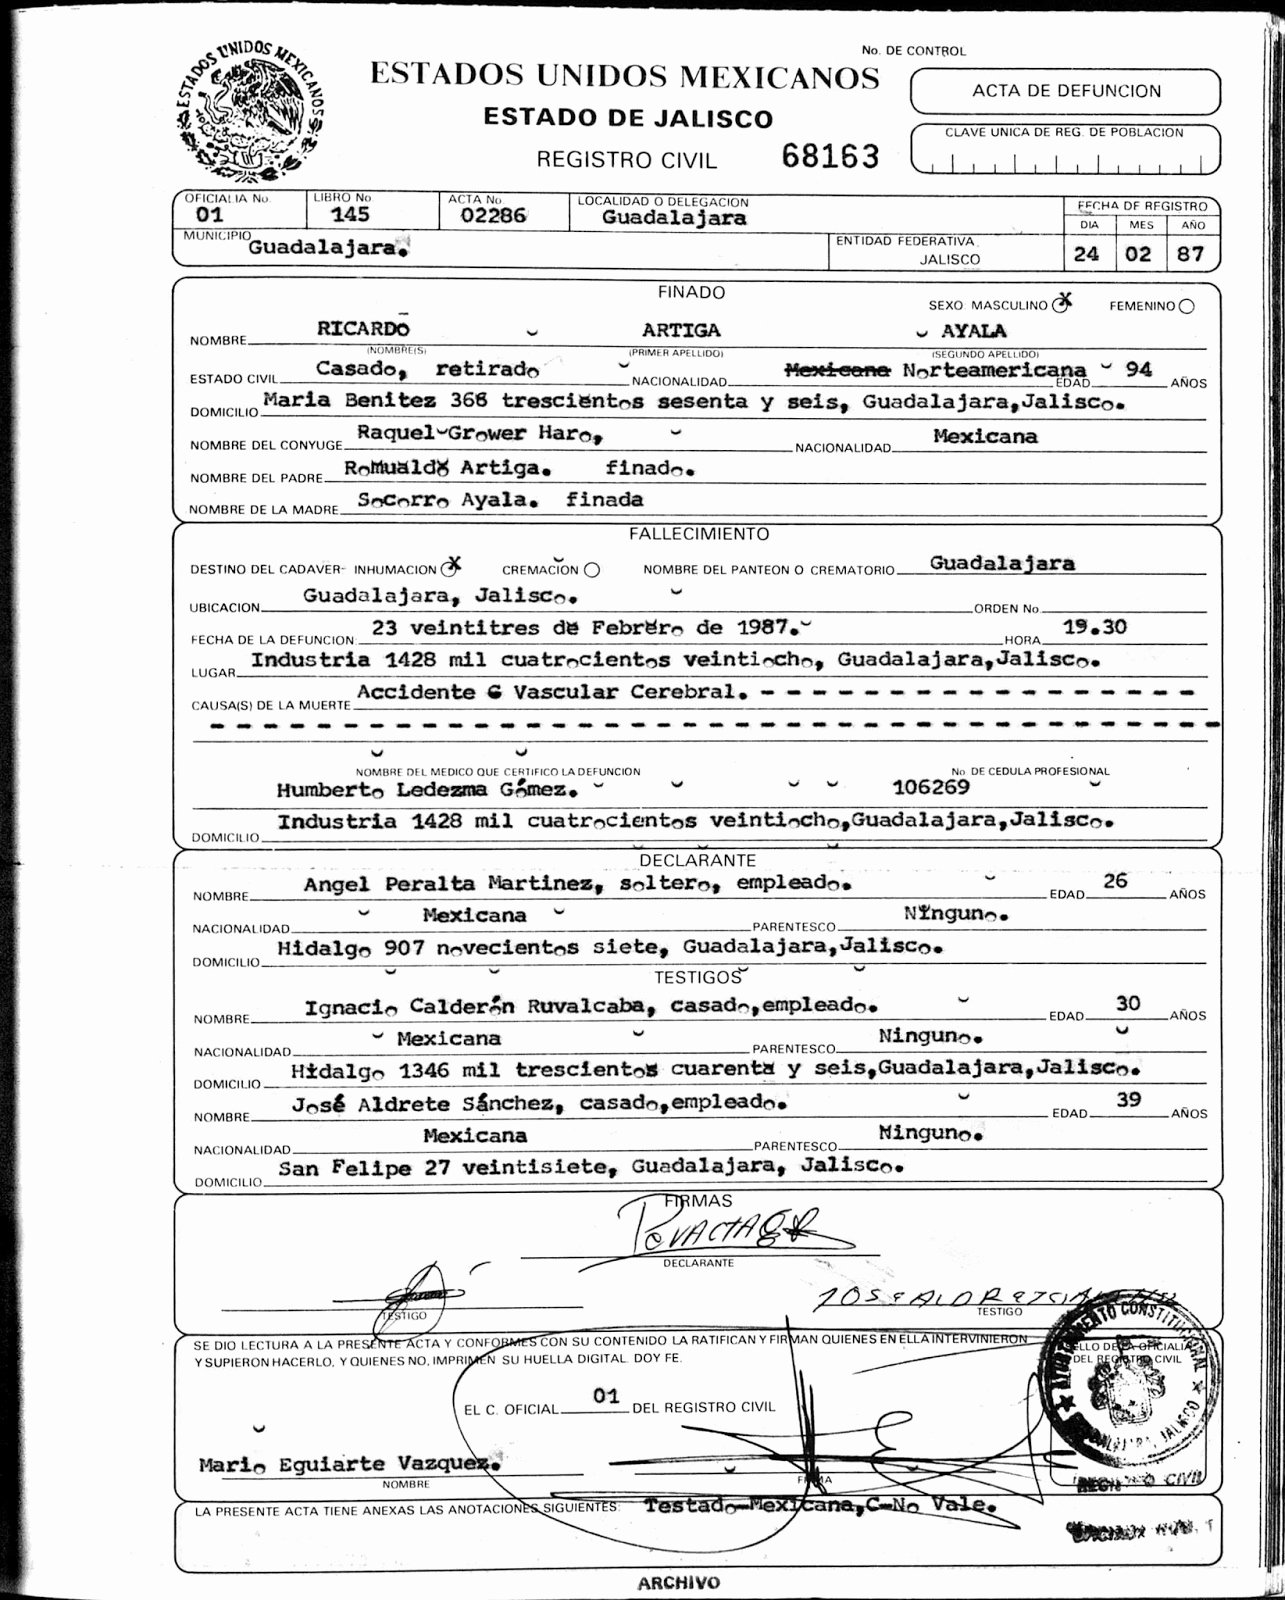 Death Certificate Translation Template Luxury Mcintyre Stevens Genealogy Ricardo Ayala Artiga 1894